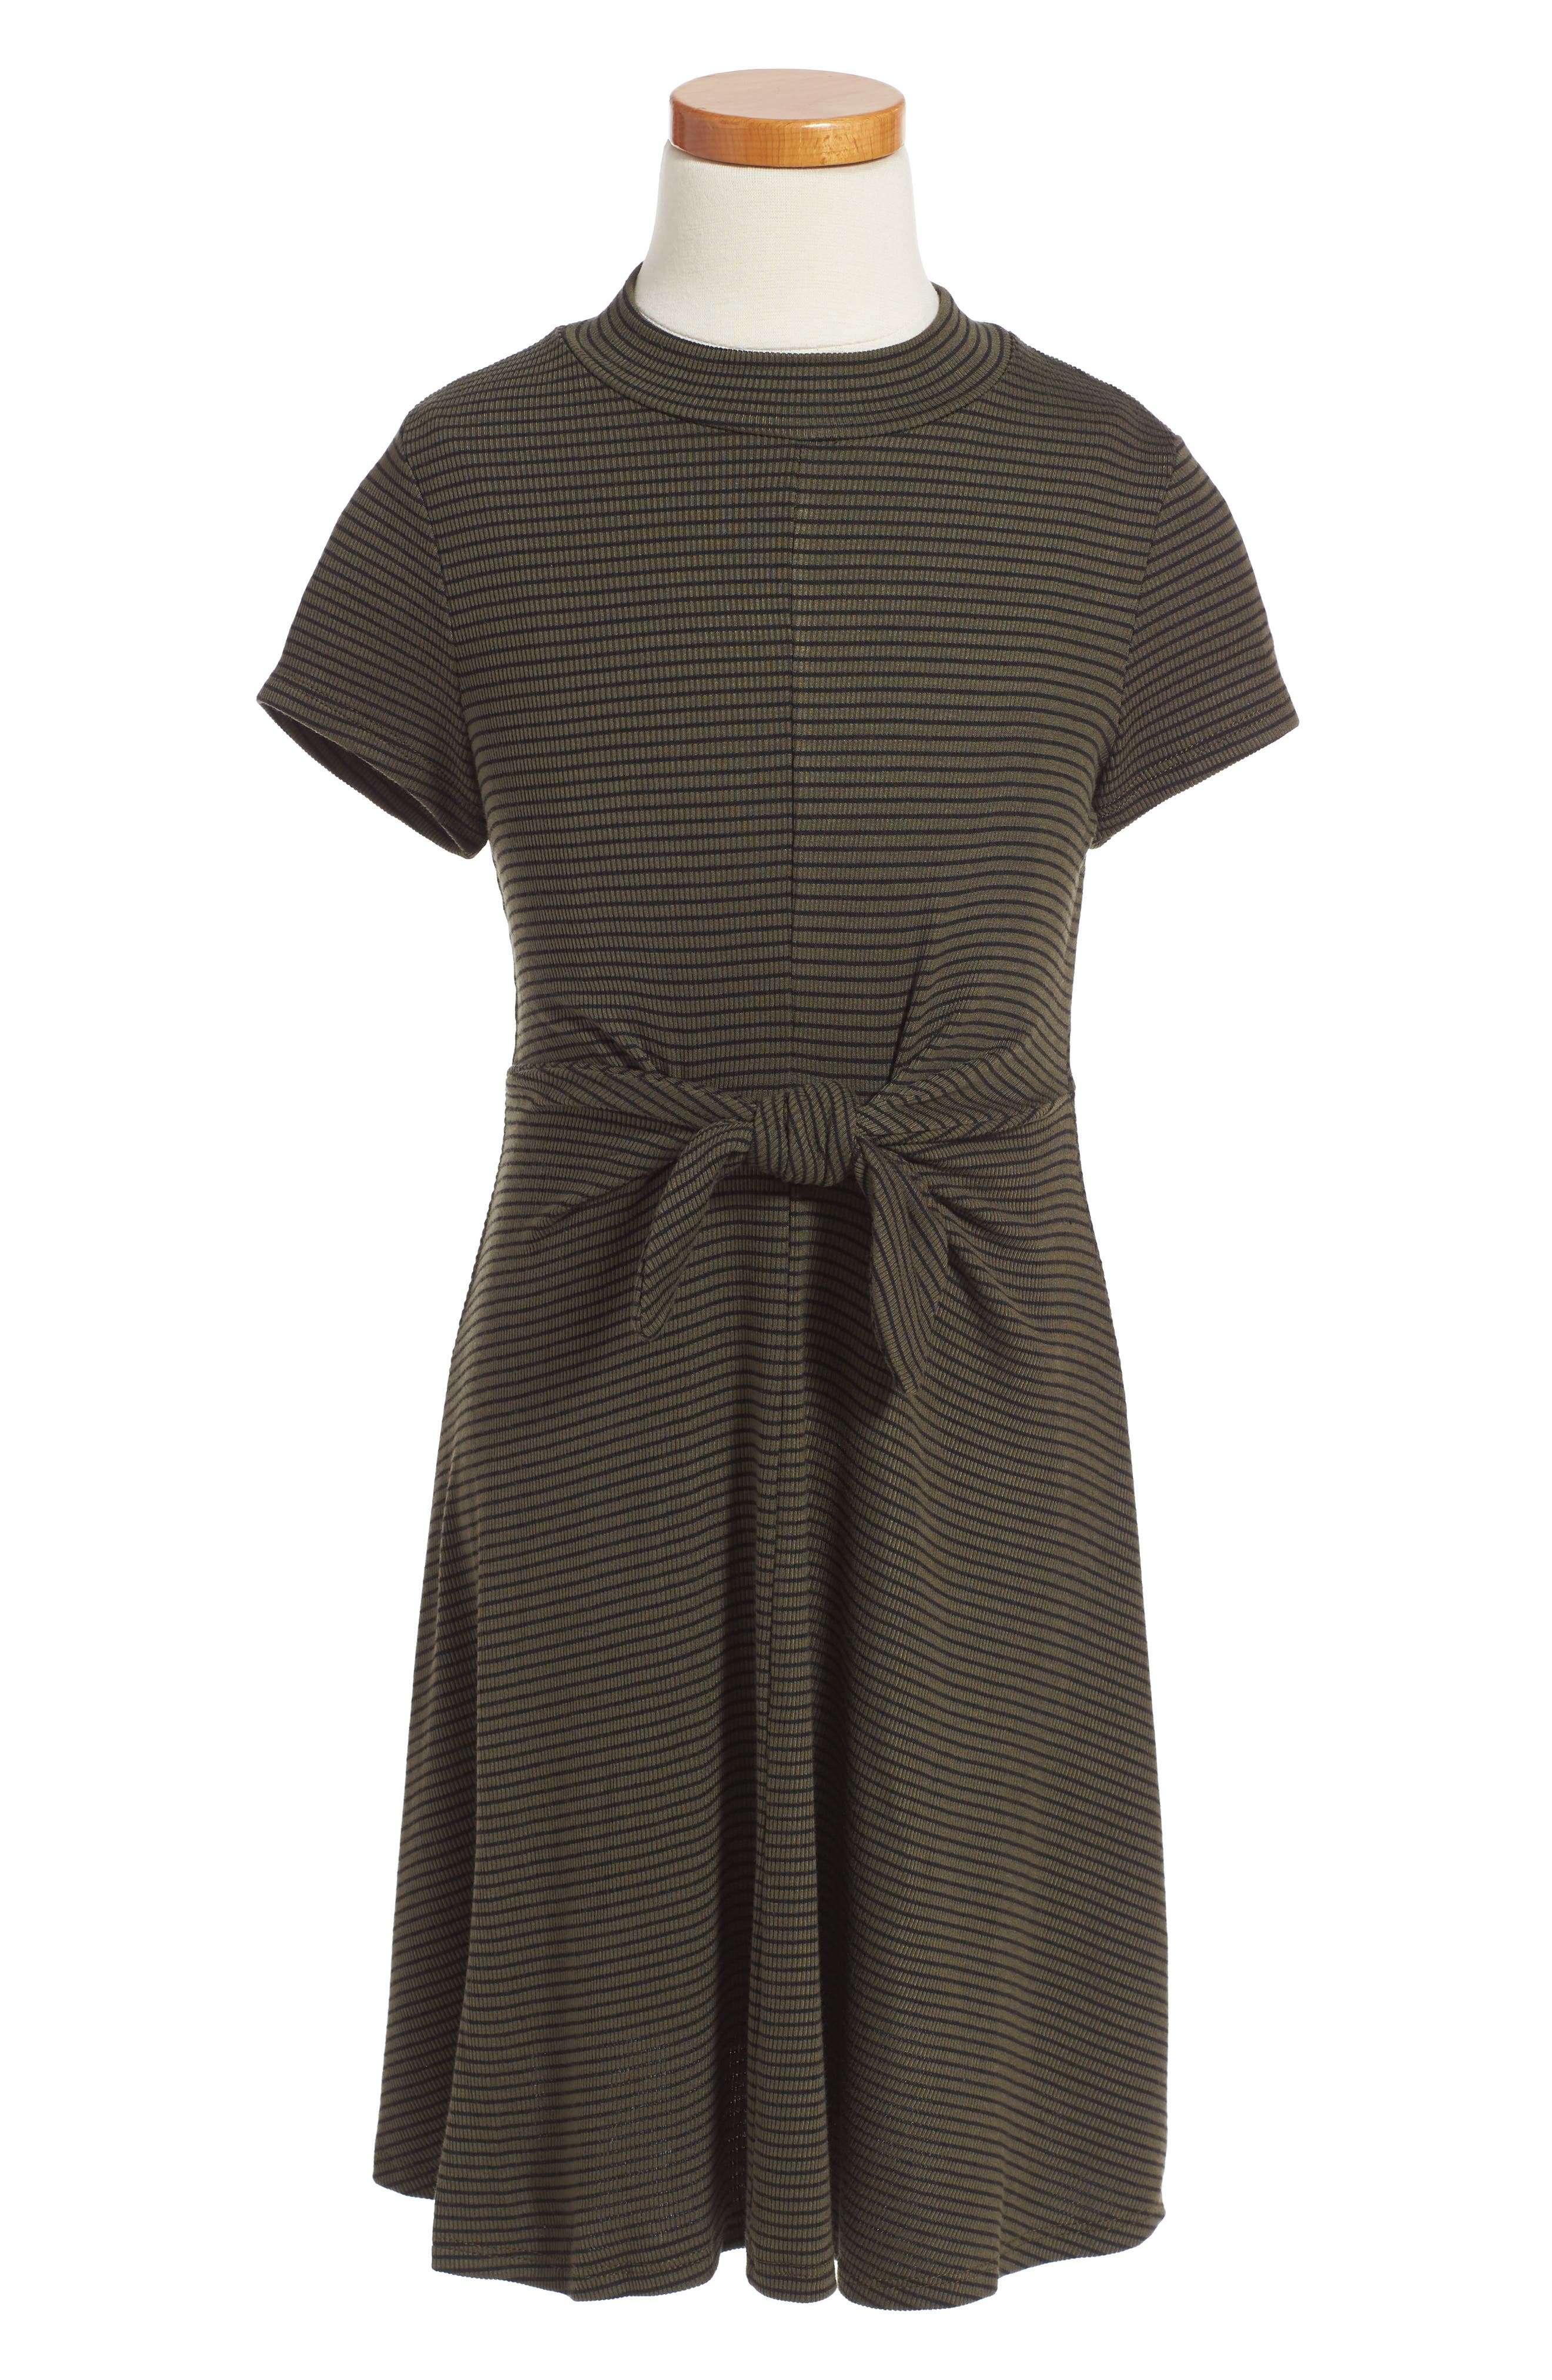 Alternate Image 1 Selected - Soprano Tie Front Stripe Dress (Big Girls)